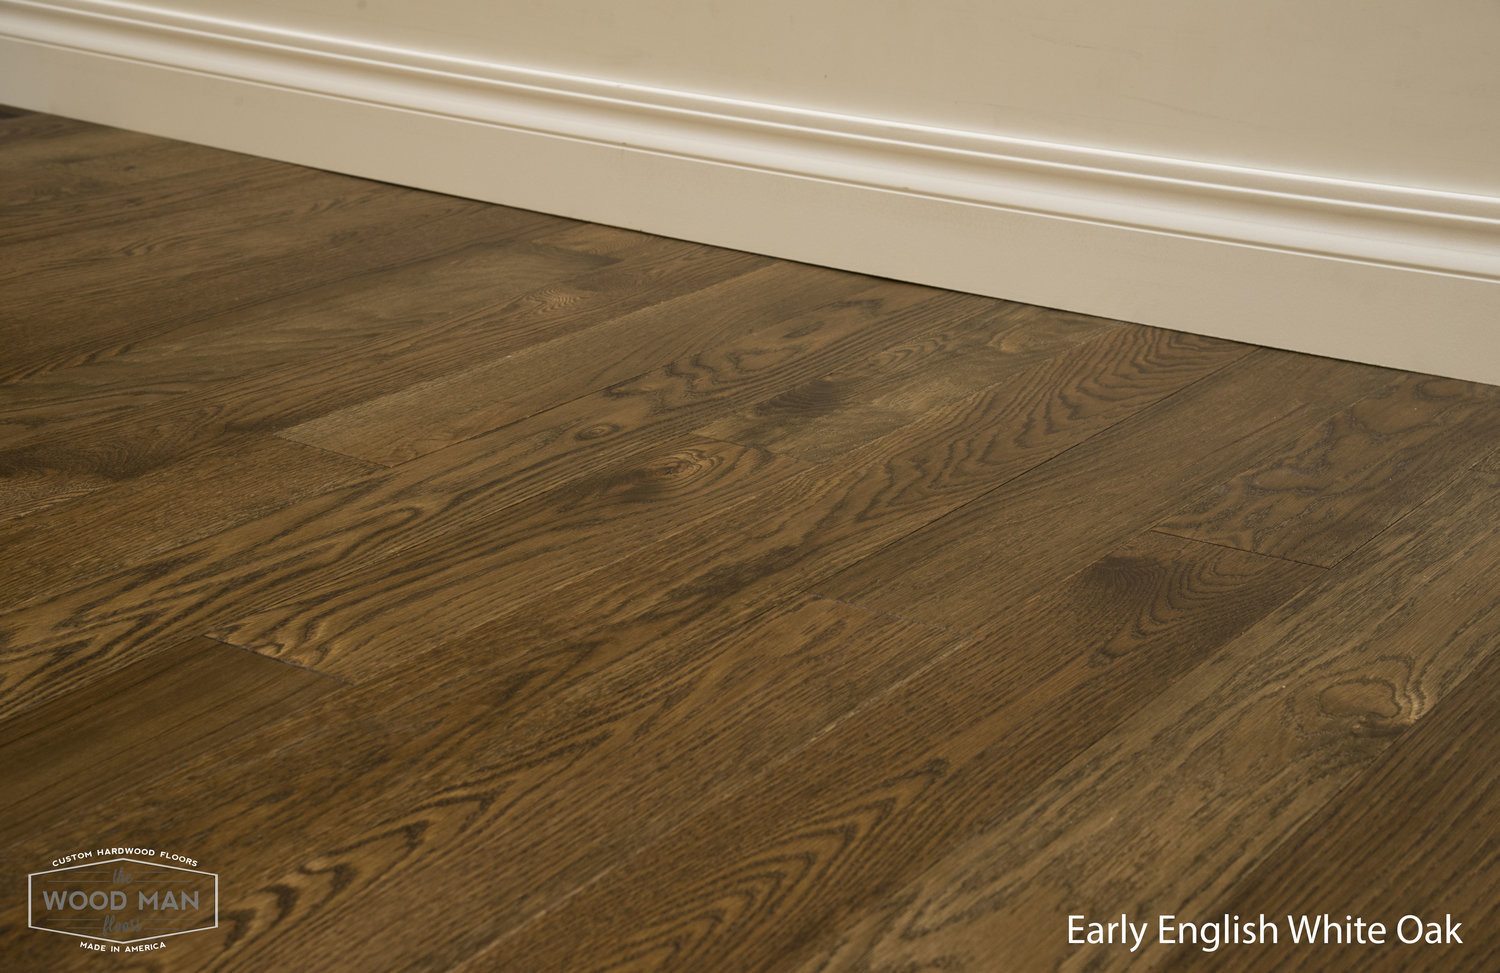 hardwood floor stain colors for white oak of the wood man floors pictures the wood man floors pertaining to early english white oak 1